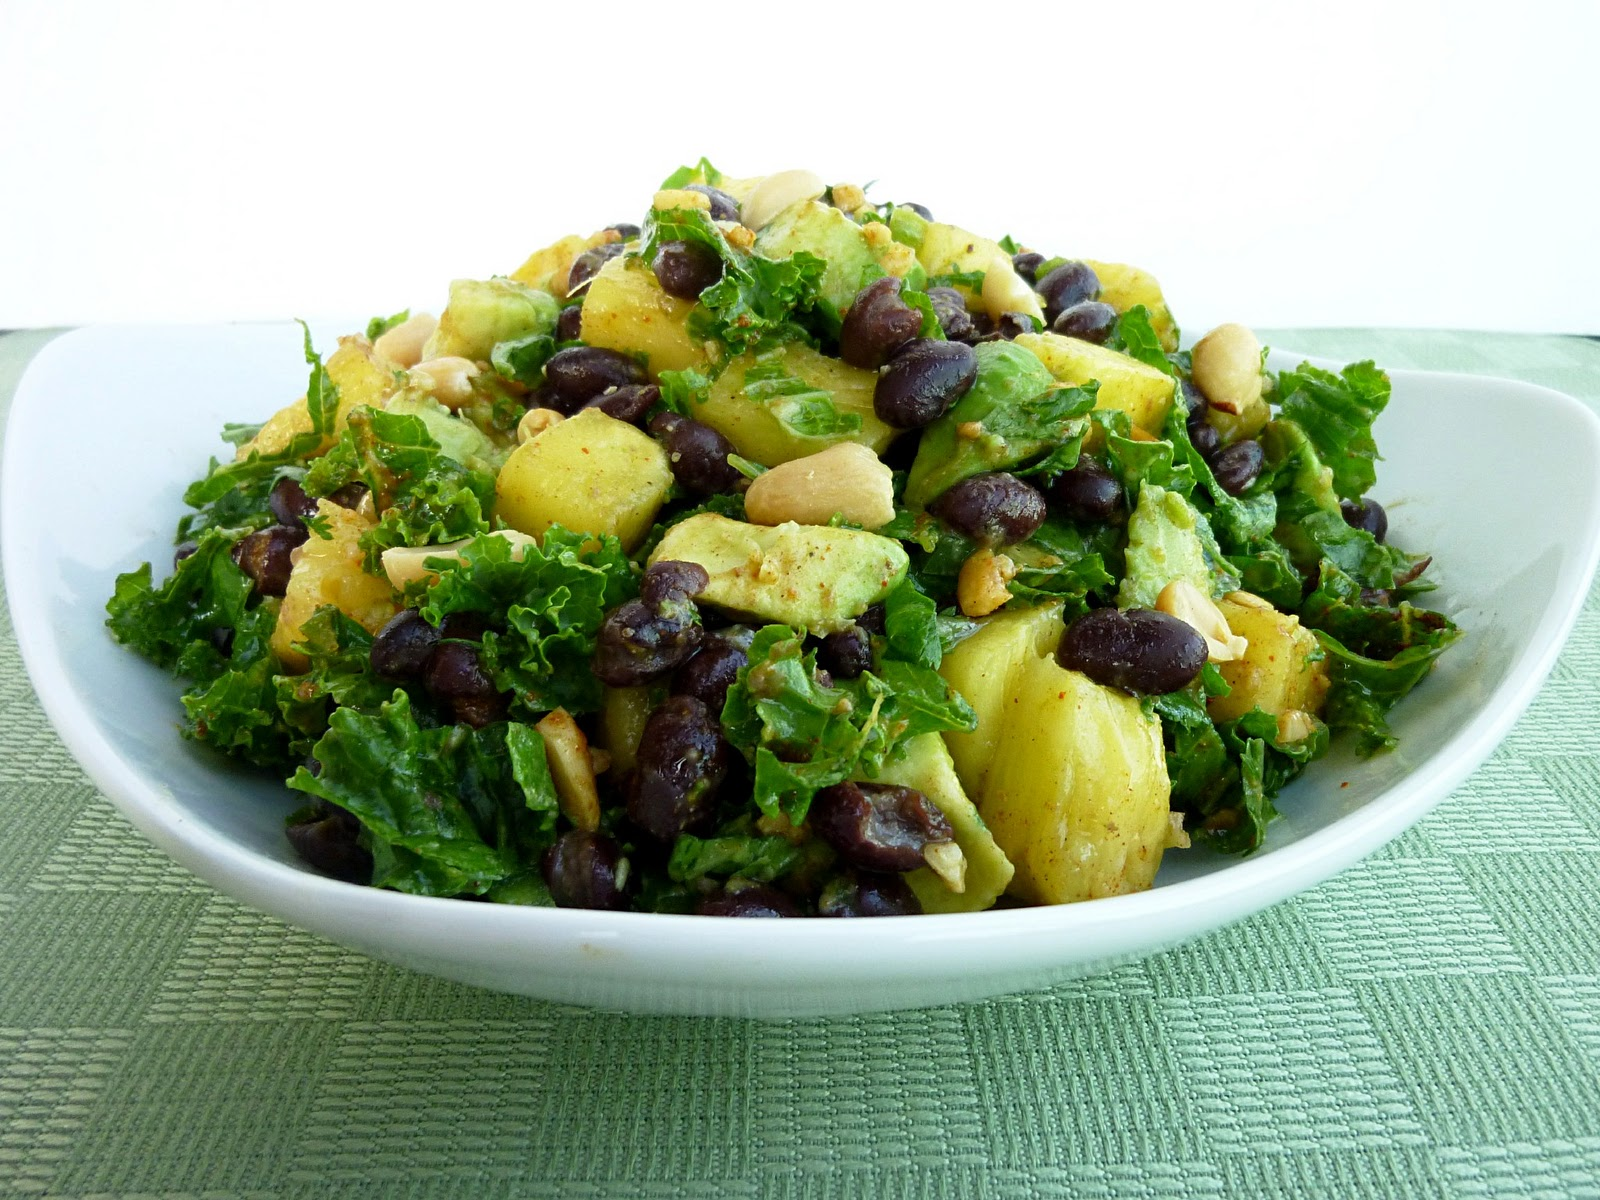 Avocado Pineapple Kale Salad/Wraps with Black Beans and an a..